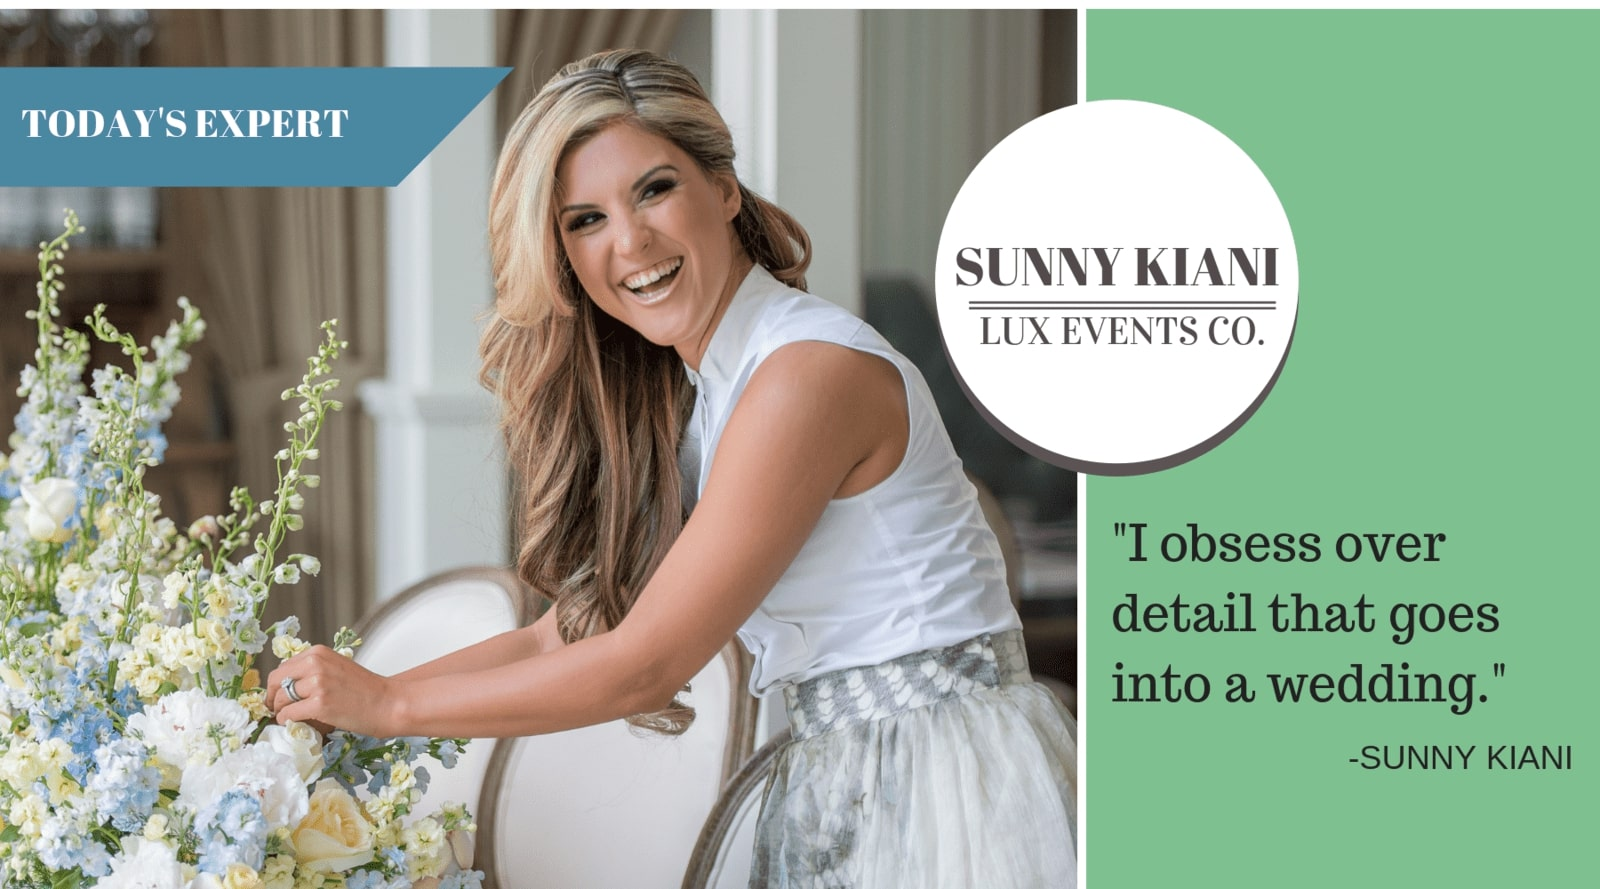 Today's Expert: Interview with Sunny Kiani of Lux Events Co.